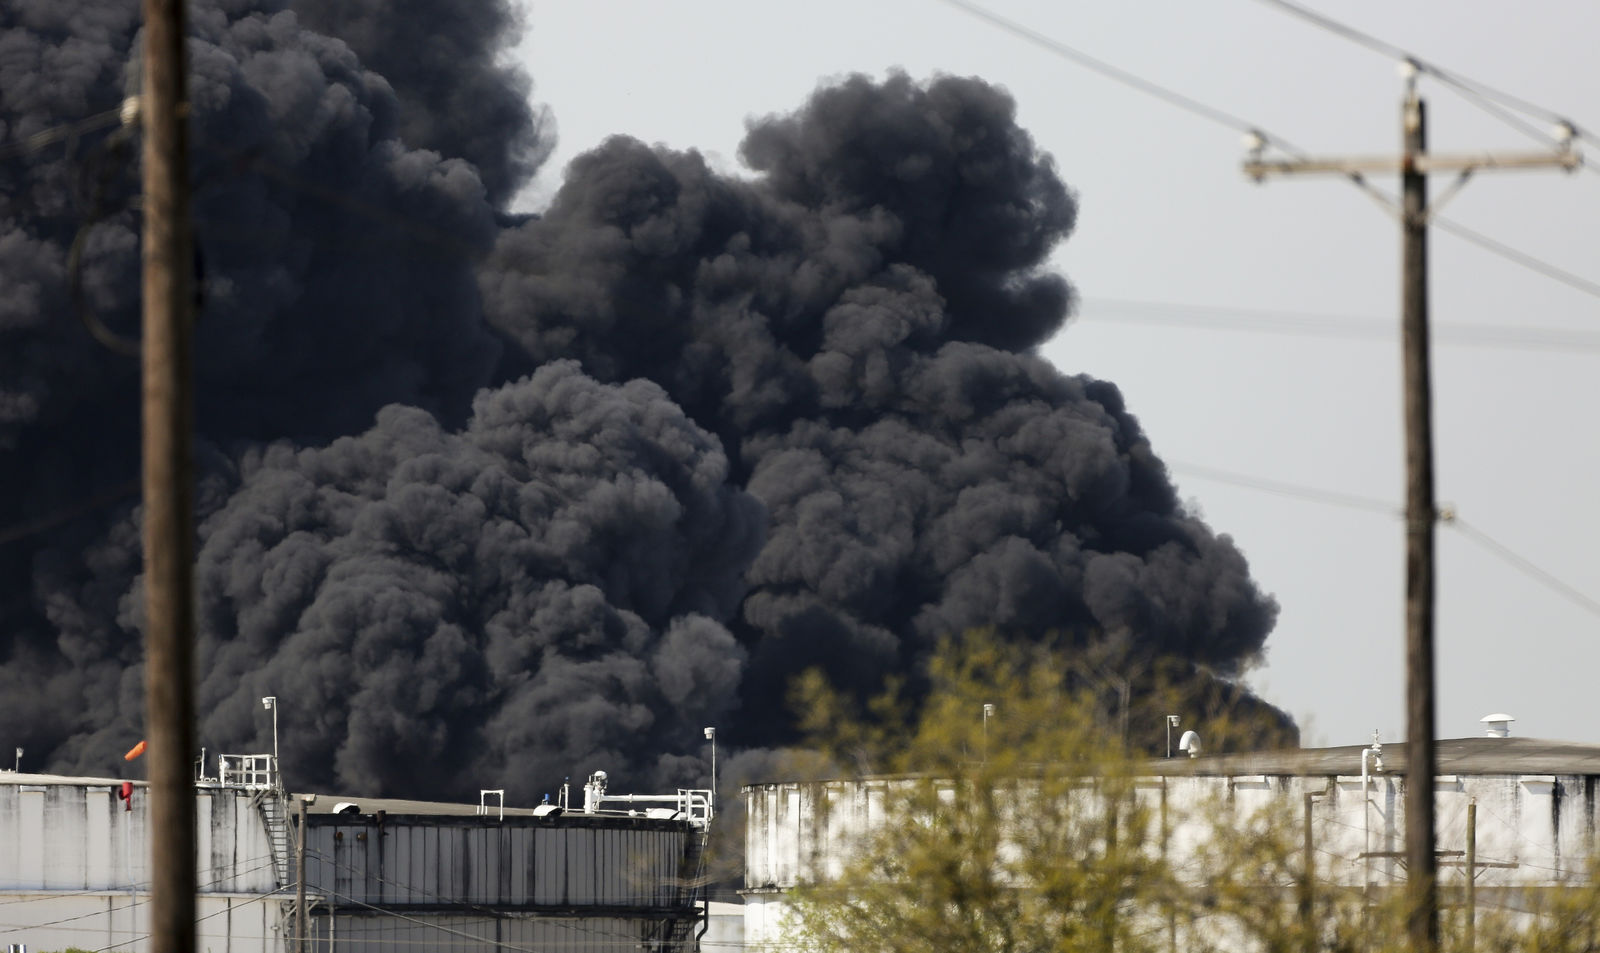 The petrochemical fire at Intercontinental Terminals Company reignited as crews tried to clean out the chemicals that remained in the tanks, Friday, March 22, 2019, in Deer Park, Texas.  The efforts to clean up a Texas industrial plant that burned for several days this week were hamstrung Friday by a briefly reignited fire and a breach that led to chemicals spilling into the nearby Houston Ship Channel. (Godofredo A. Vasquez/Houston Chronicle via AP)